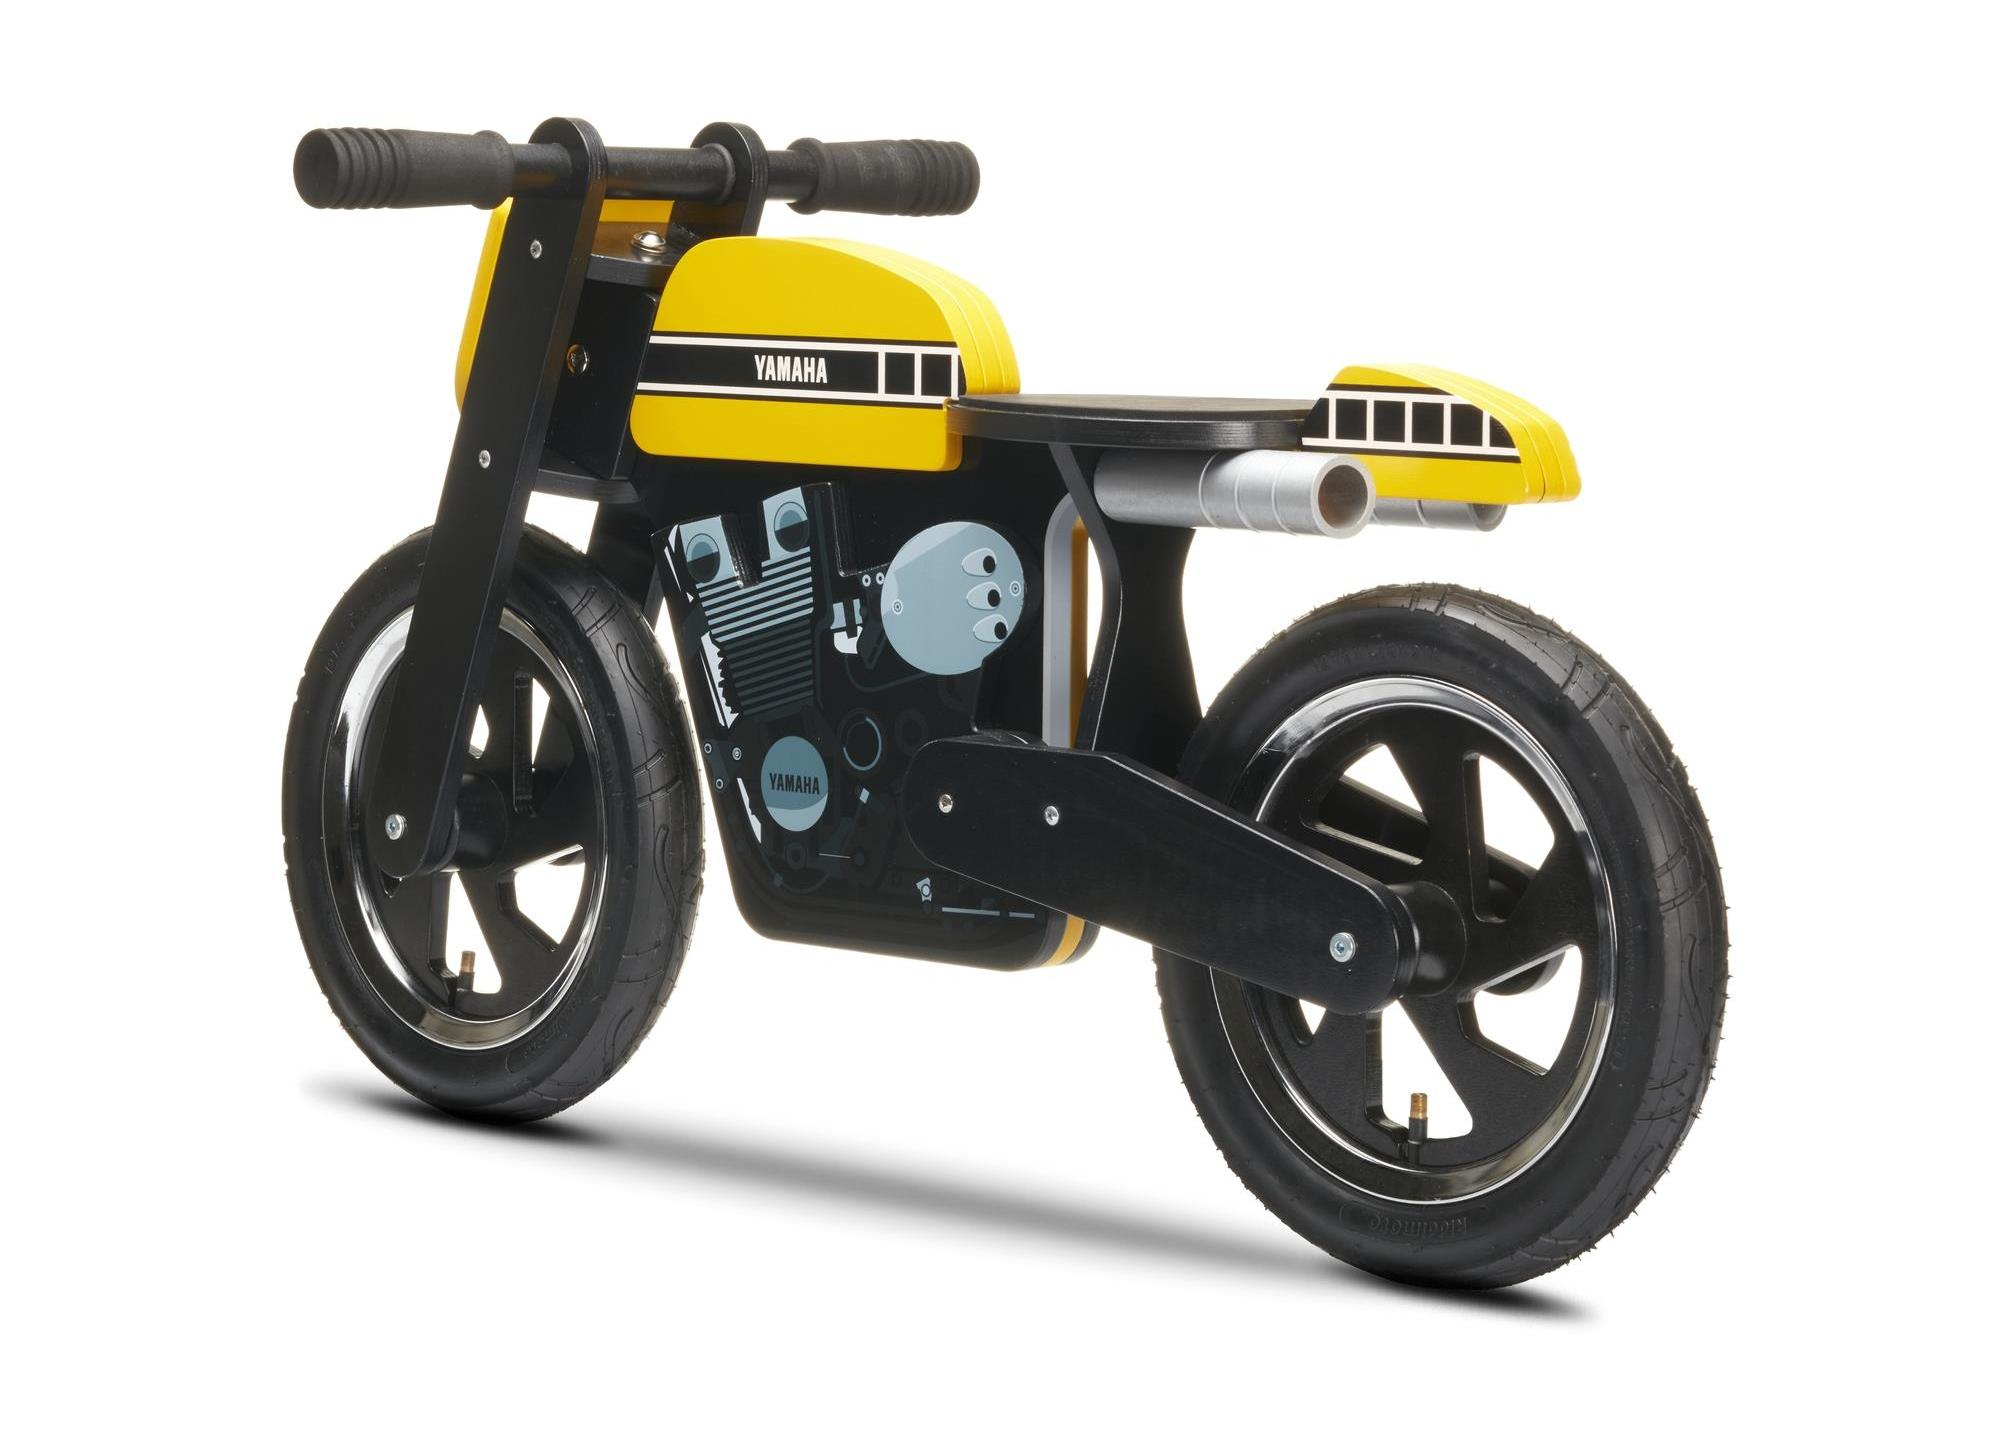 Yamaha Kids Cafe Racer Balance Bike Also Comes in 60th Anniversary Livery - autoevolution